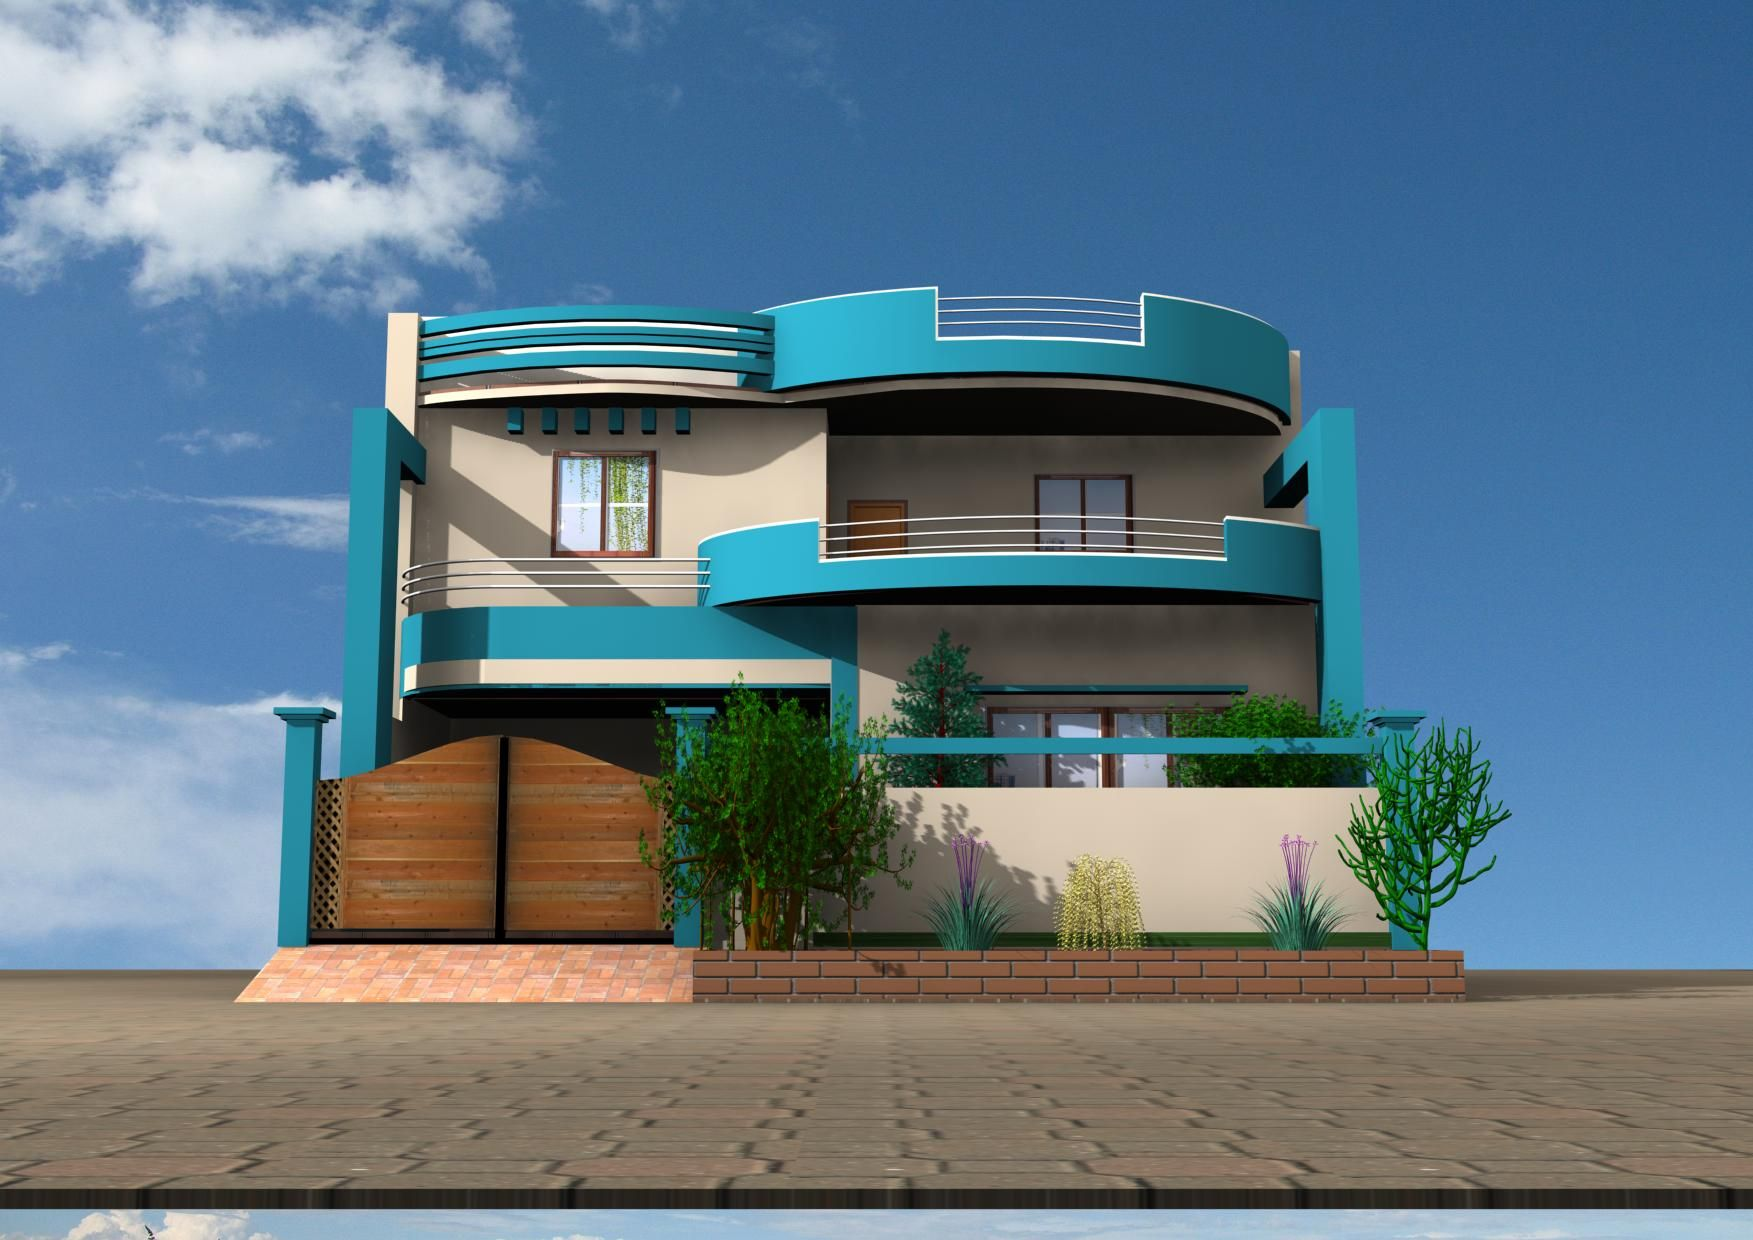 Beautiful 3D Home Design 2 By Muzammil Ahmed On DeviantArt Home Design Pictures Gallery